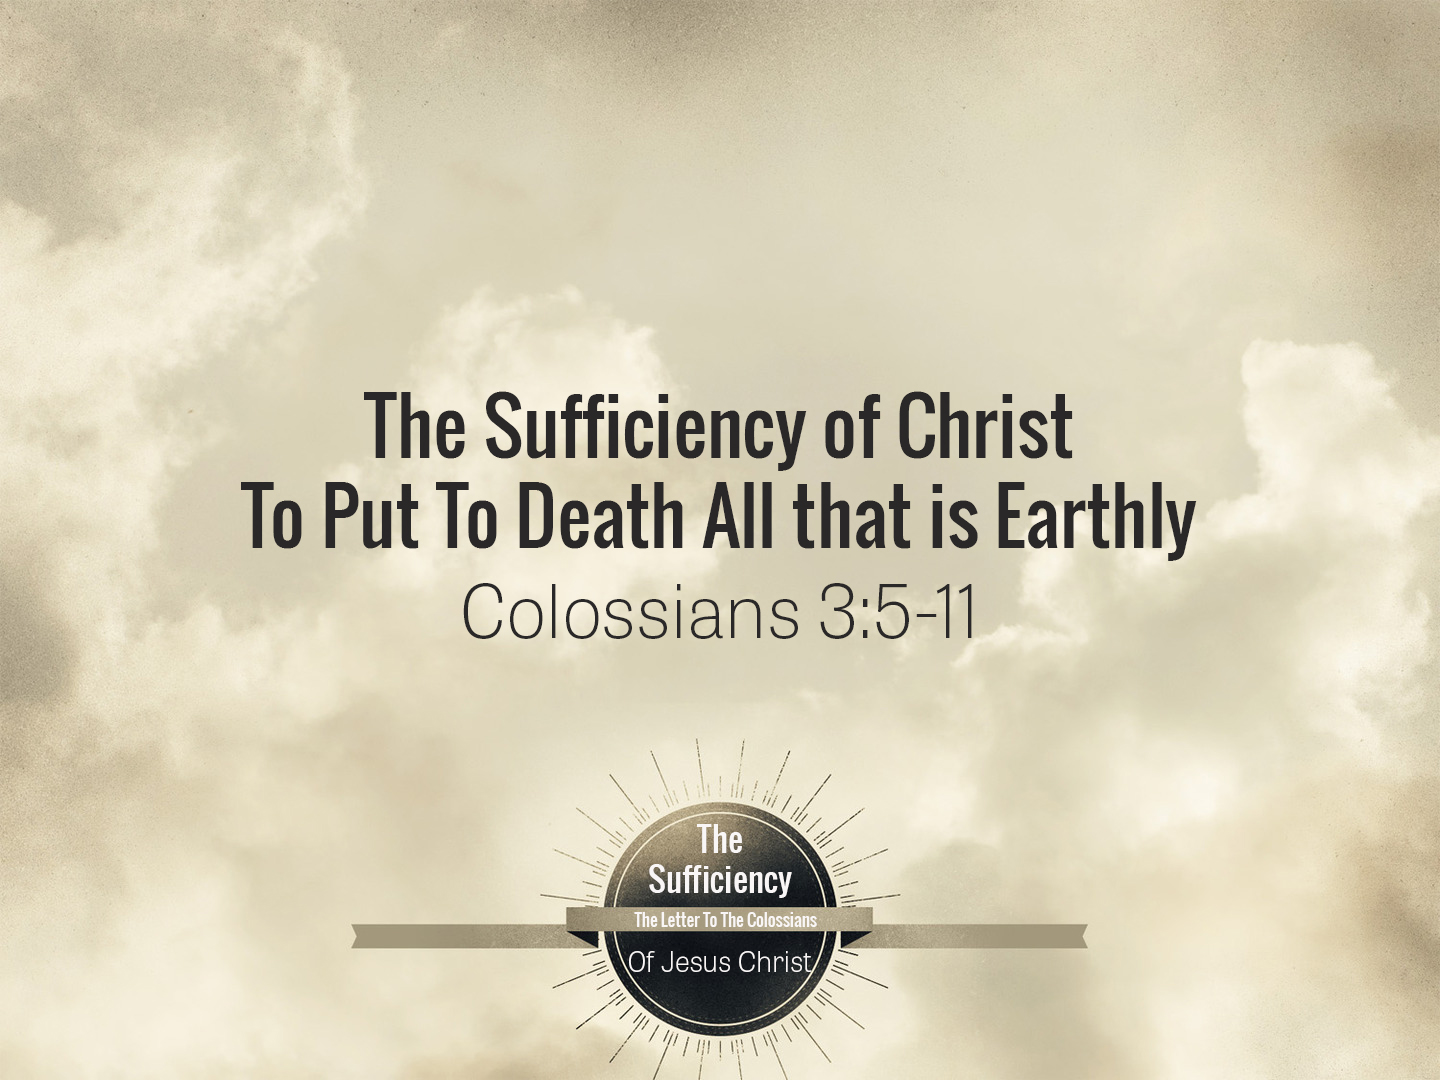 Colossians 3v5-11 The Sufficiency Of Christ For The Putting To Death Of All That Is Earthly